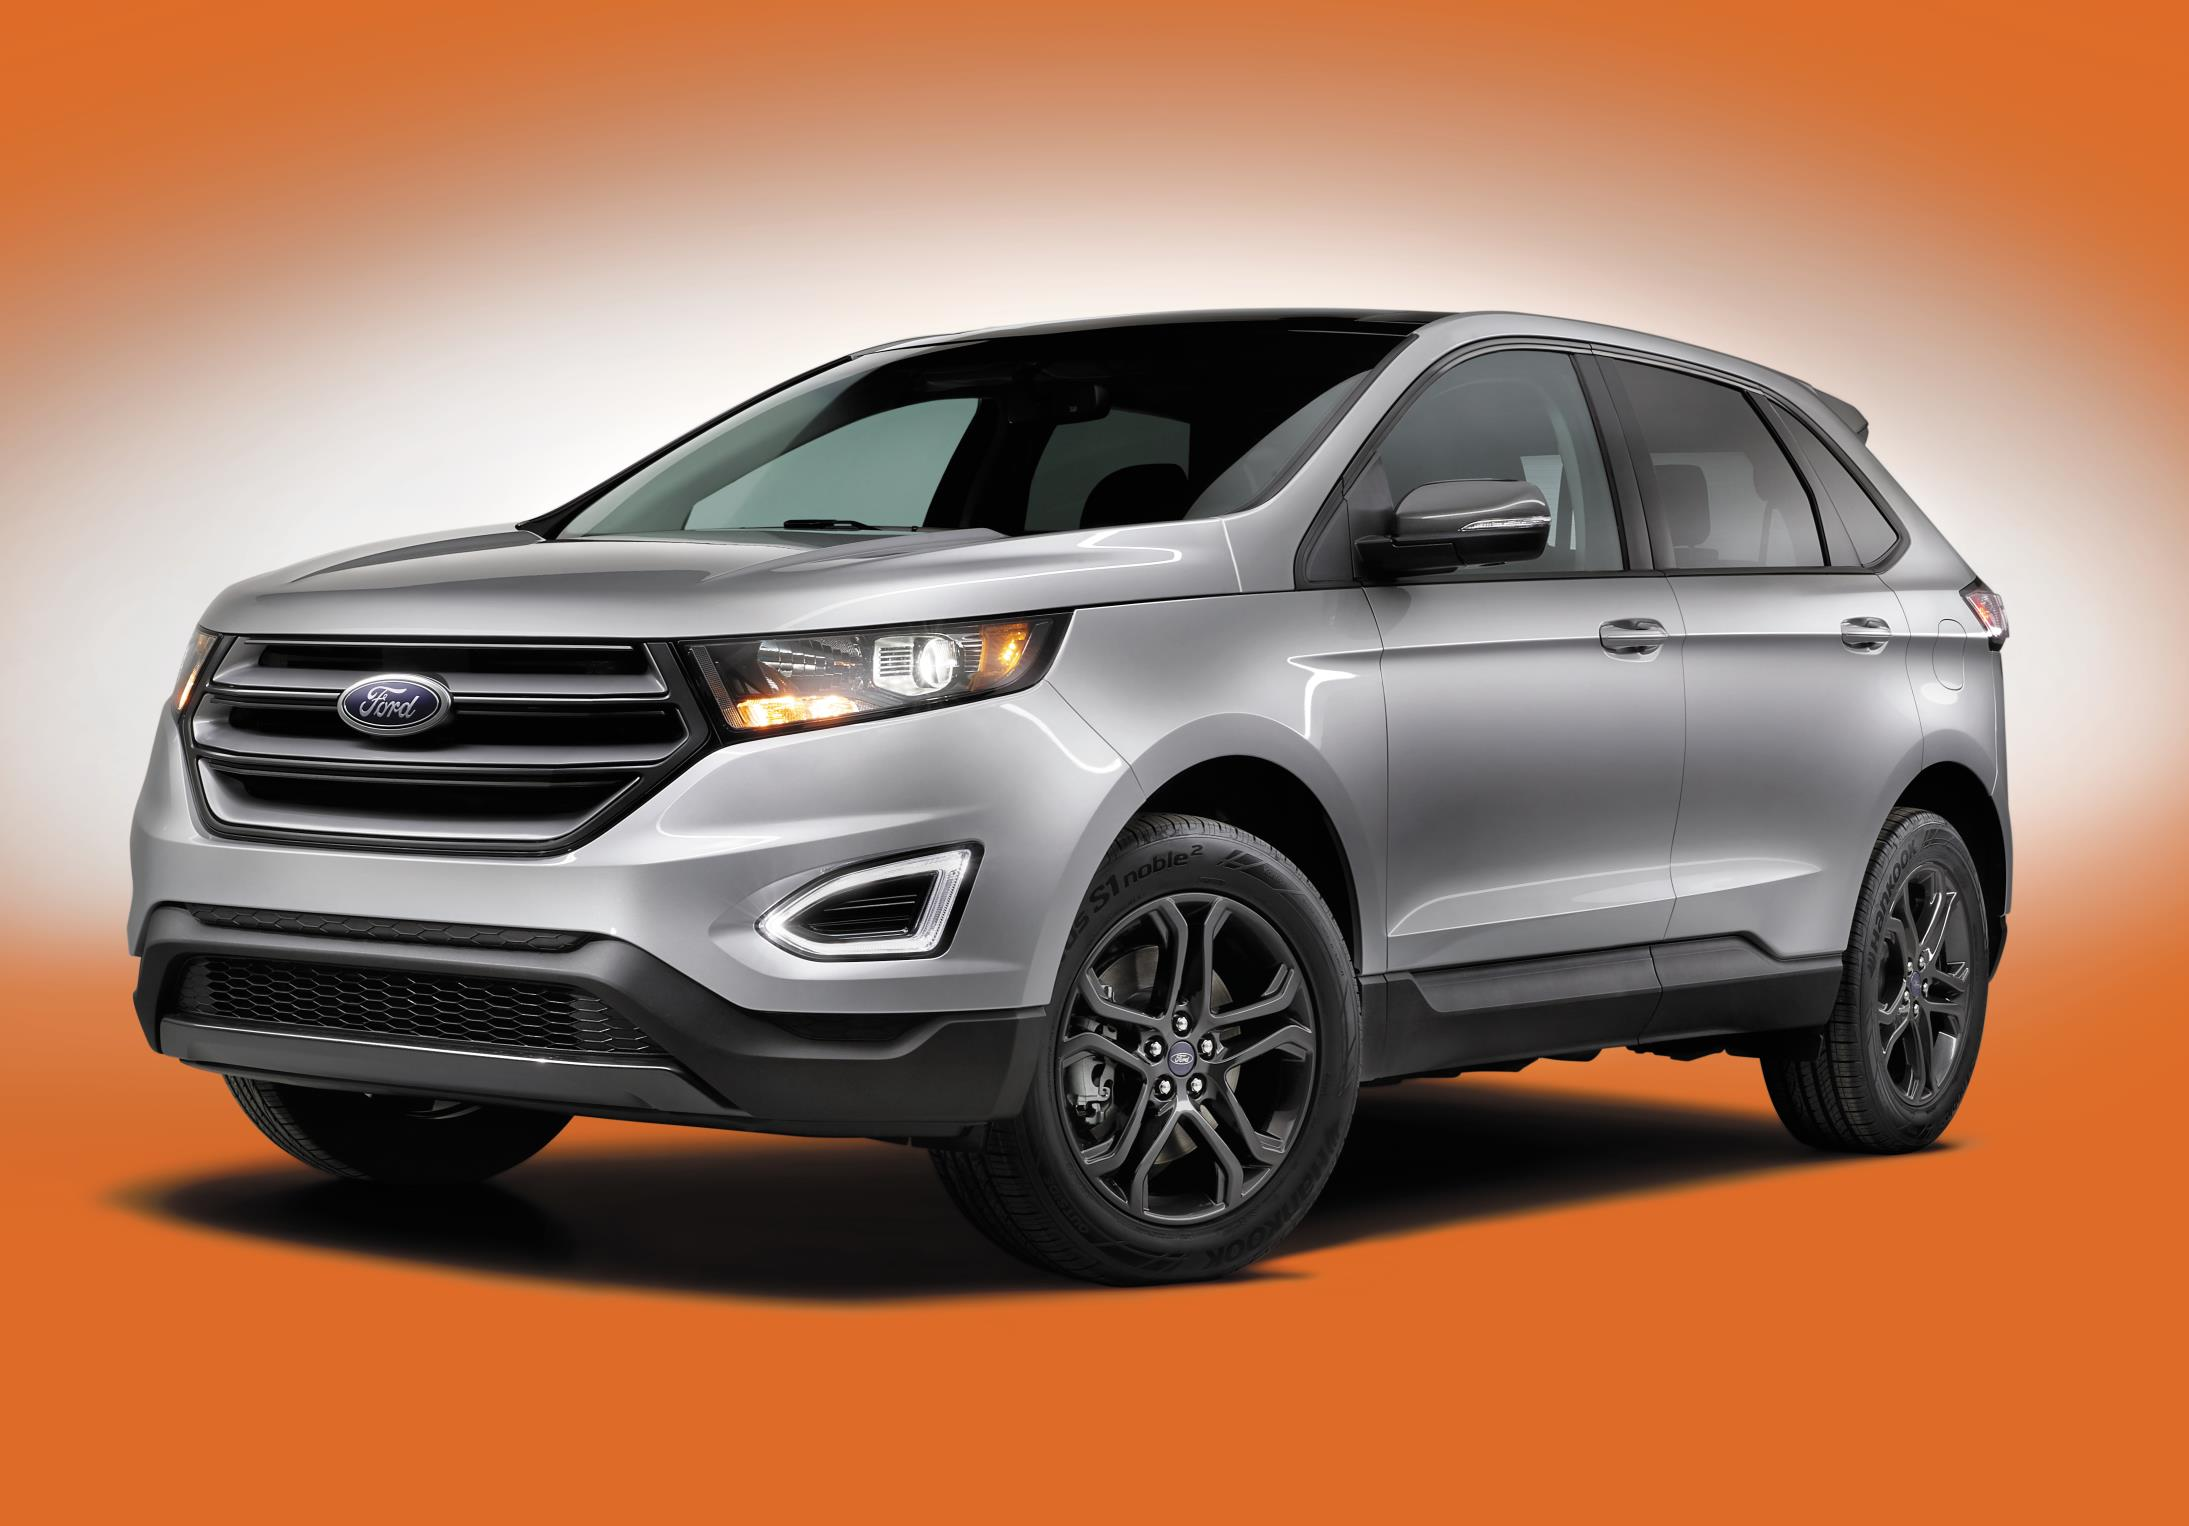 ford introduces 2018 edge sel sport appearance package looks stylish autoevolution. Black Bedroom Furniture Sets. Home Design Ideas